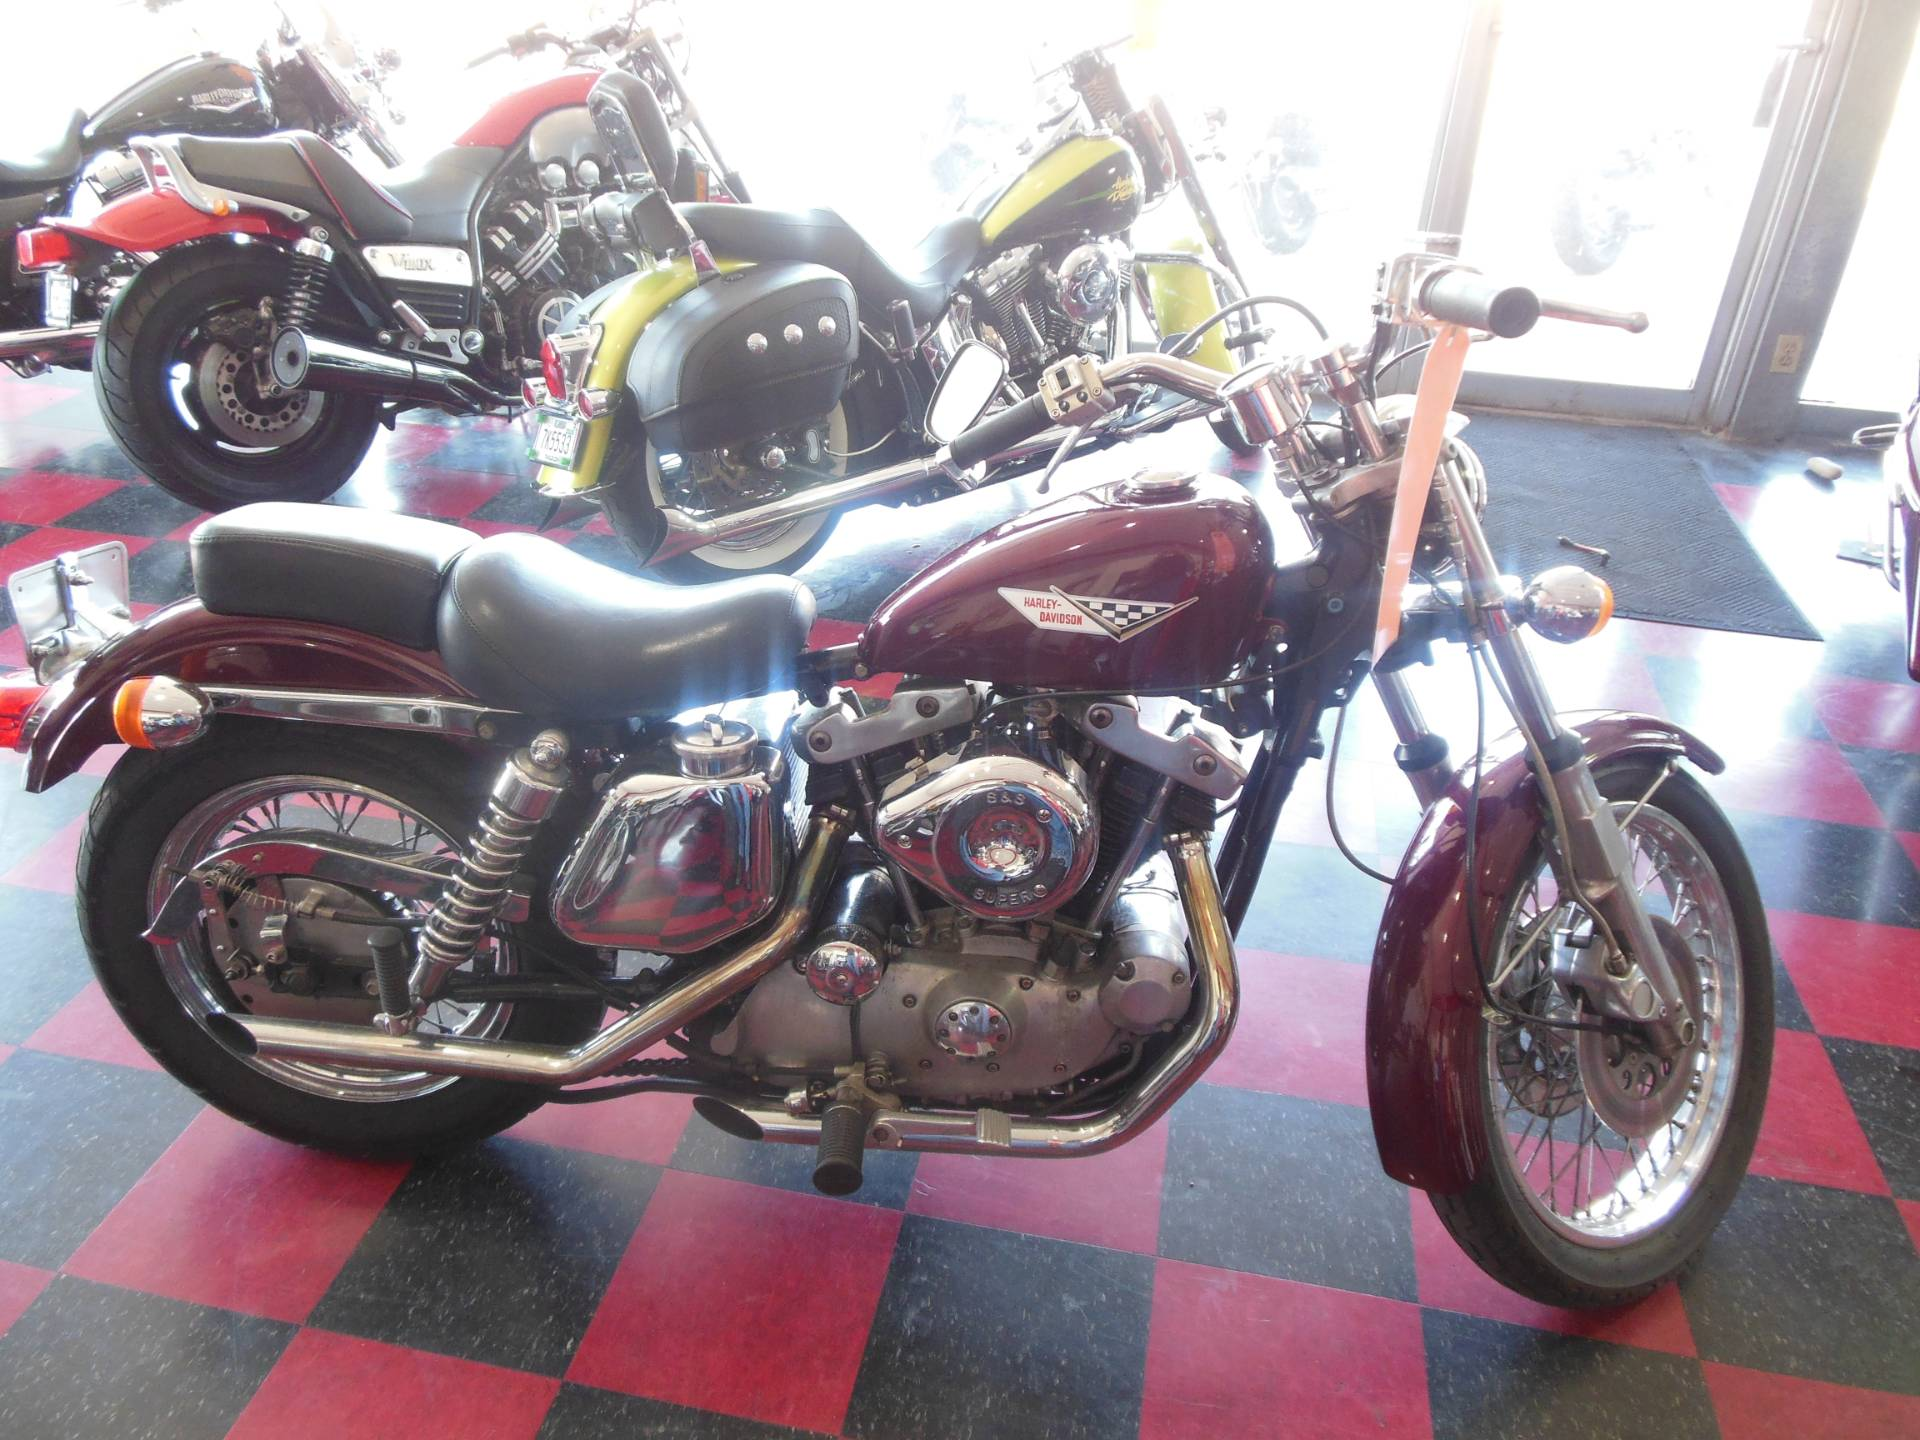 1976 Harley-Davidson XL 1200 N for sale 44324